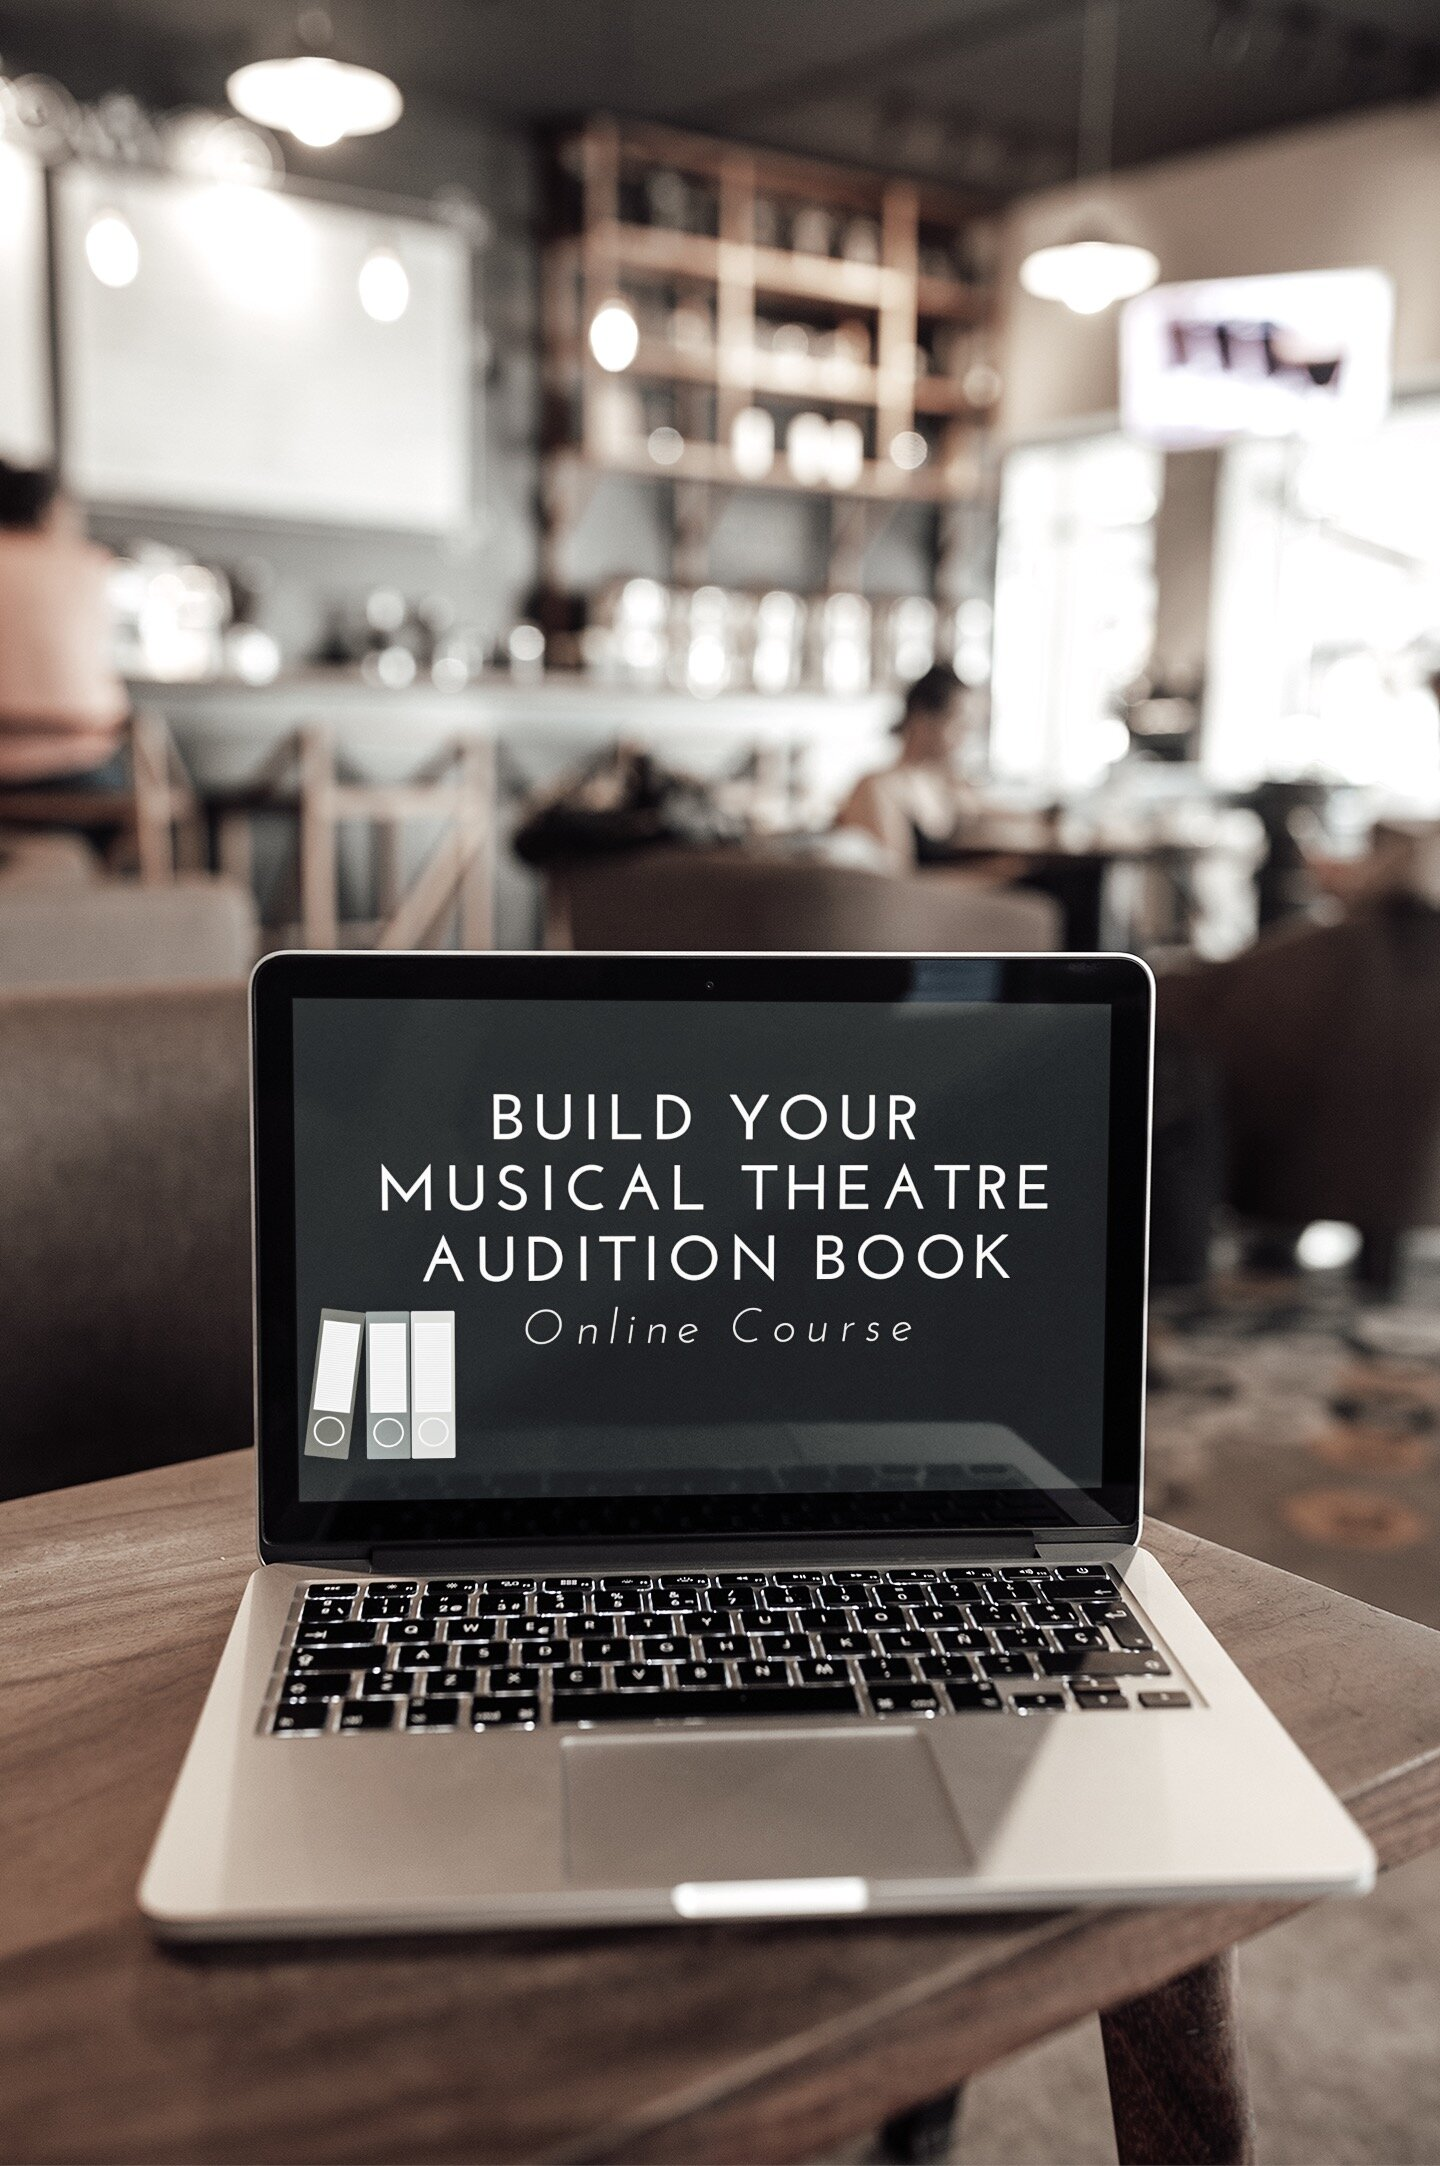 ACTOR AESTHETIC ONLINE COURSE - BUILD YOUR MUSICAL THEATRE AUDITION BOOK